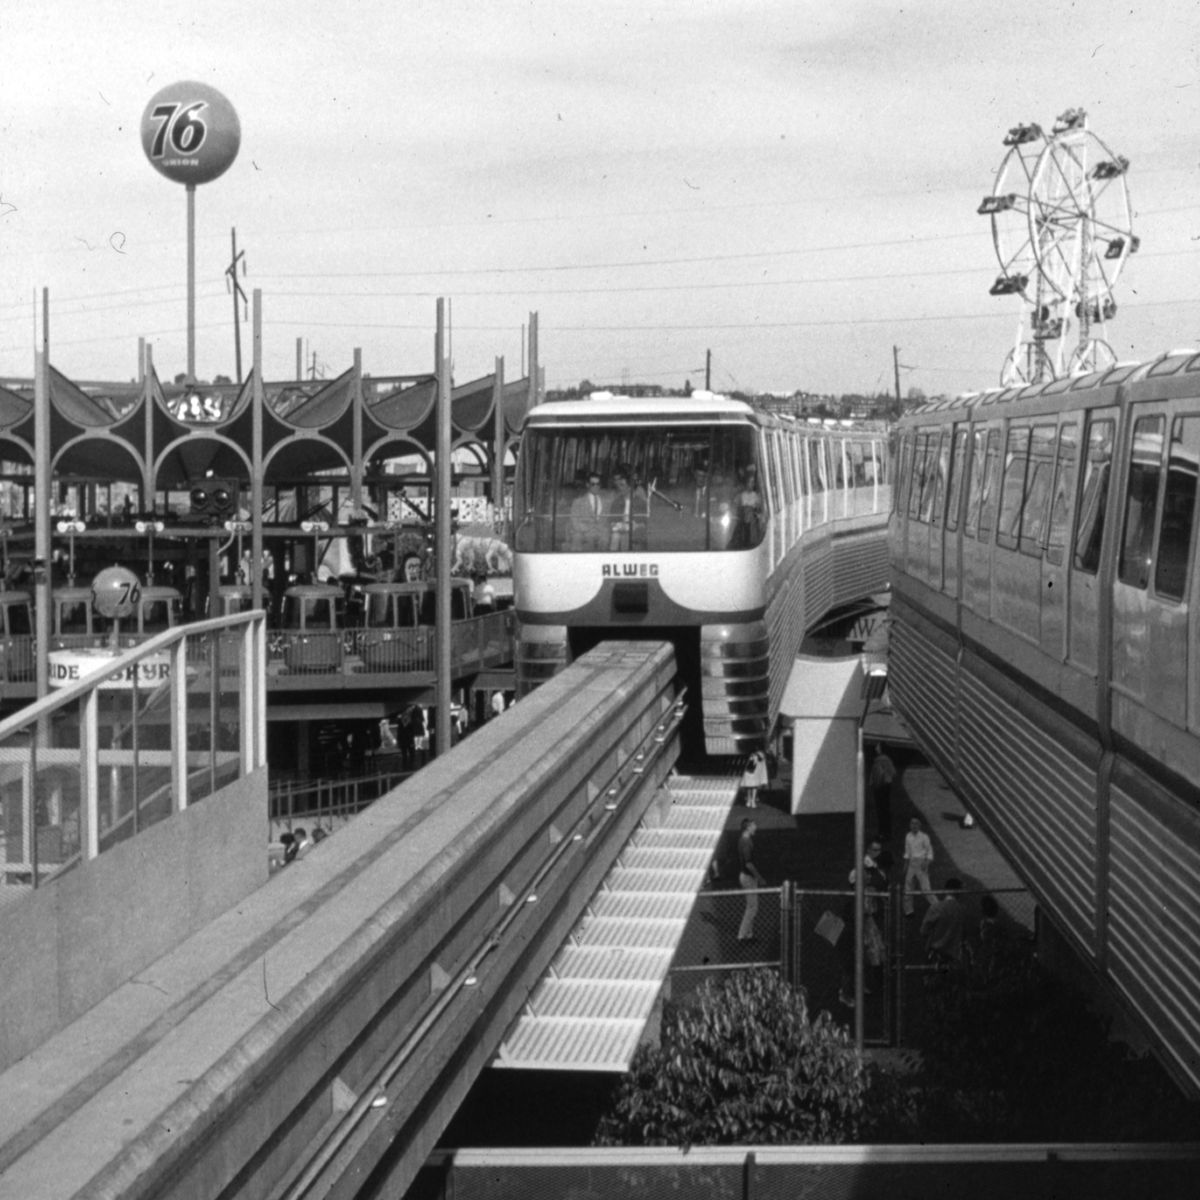 A monorail car leaves the World's Fair, with a Ferris wheel visible in the background